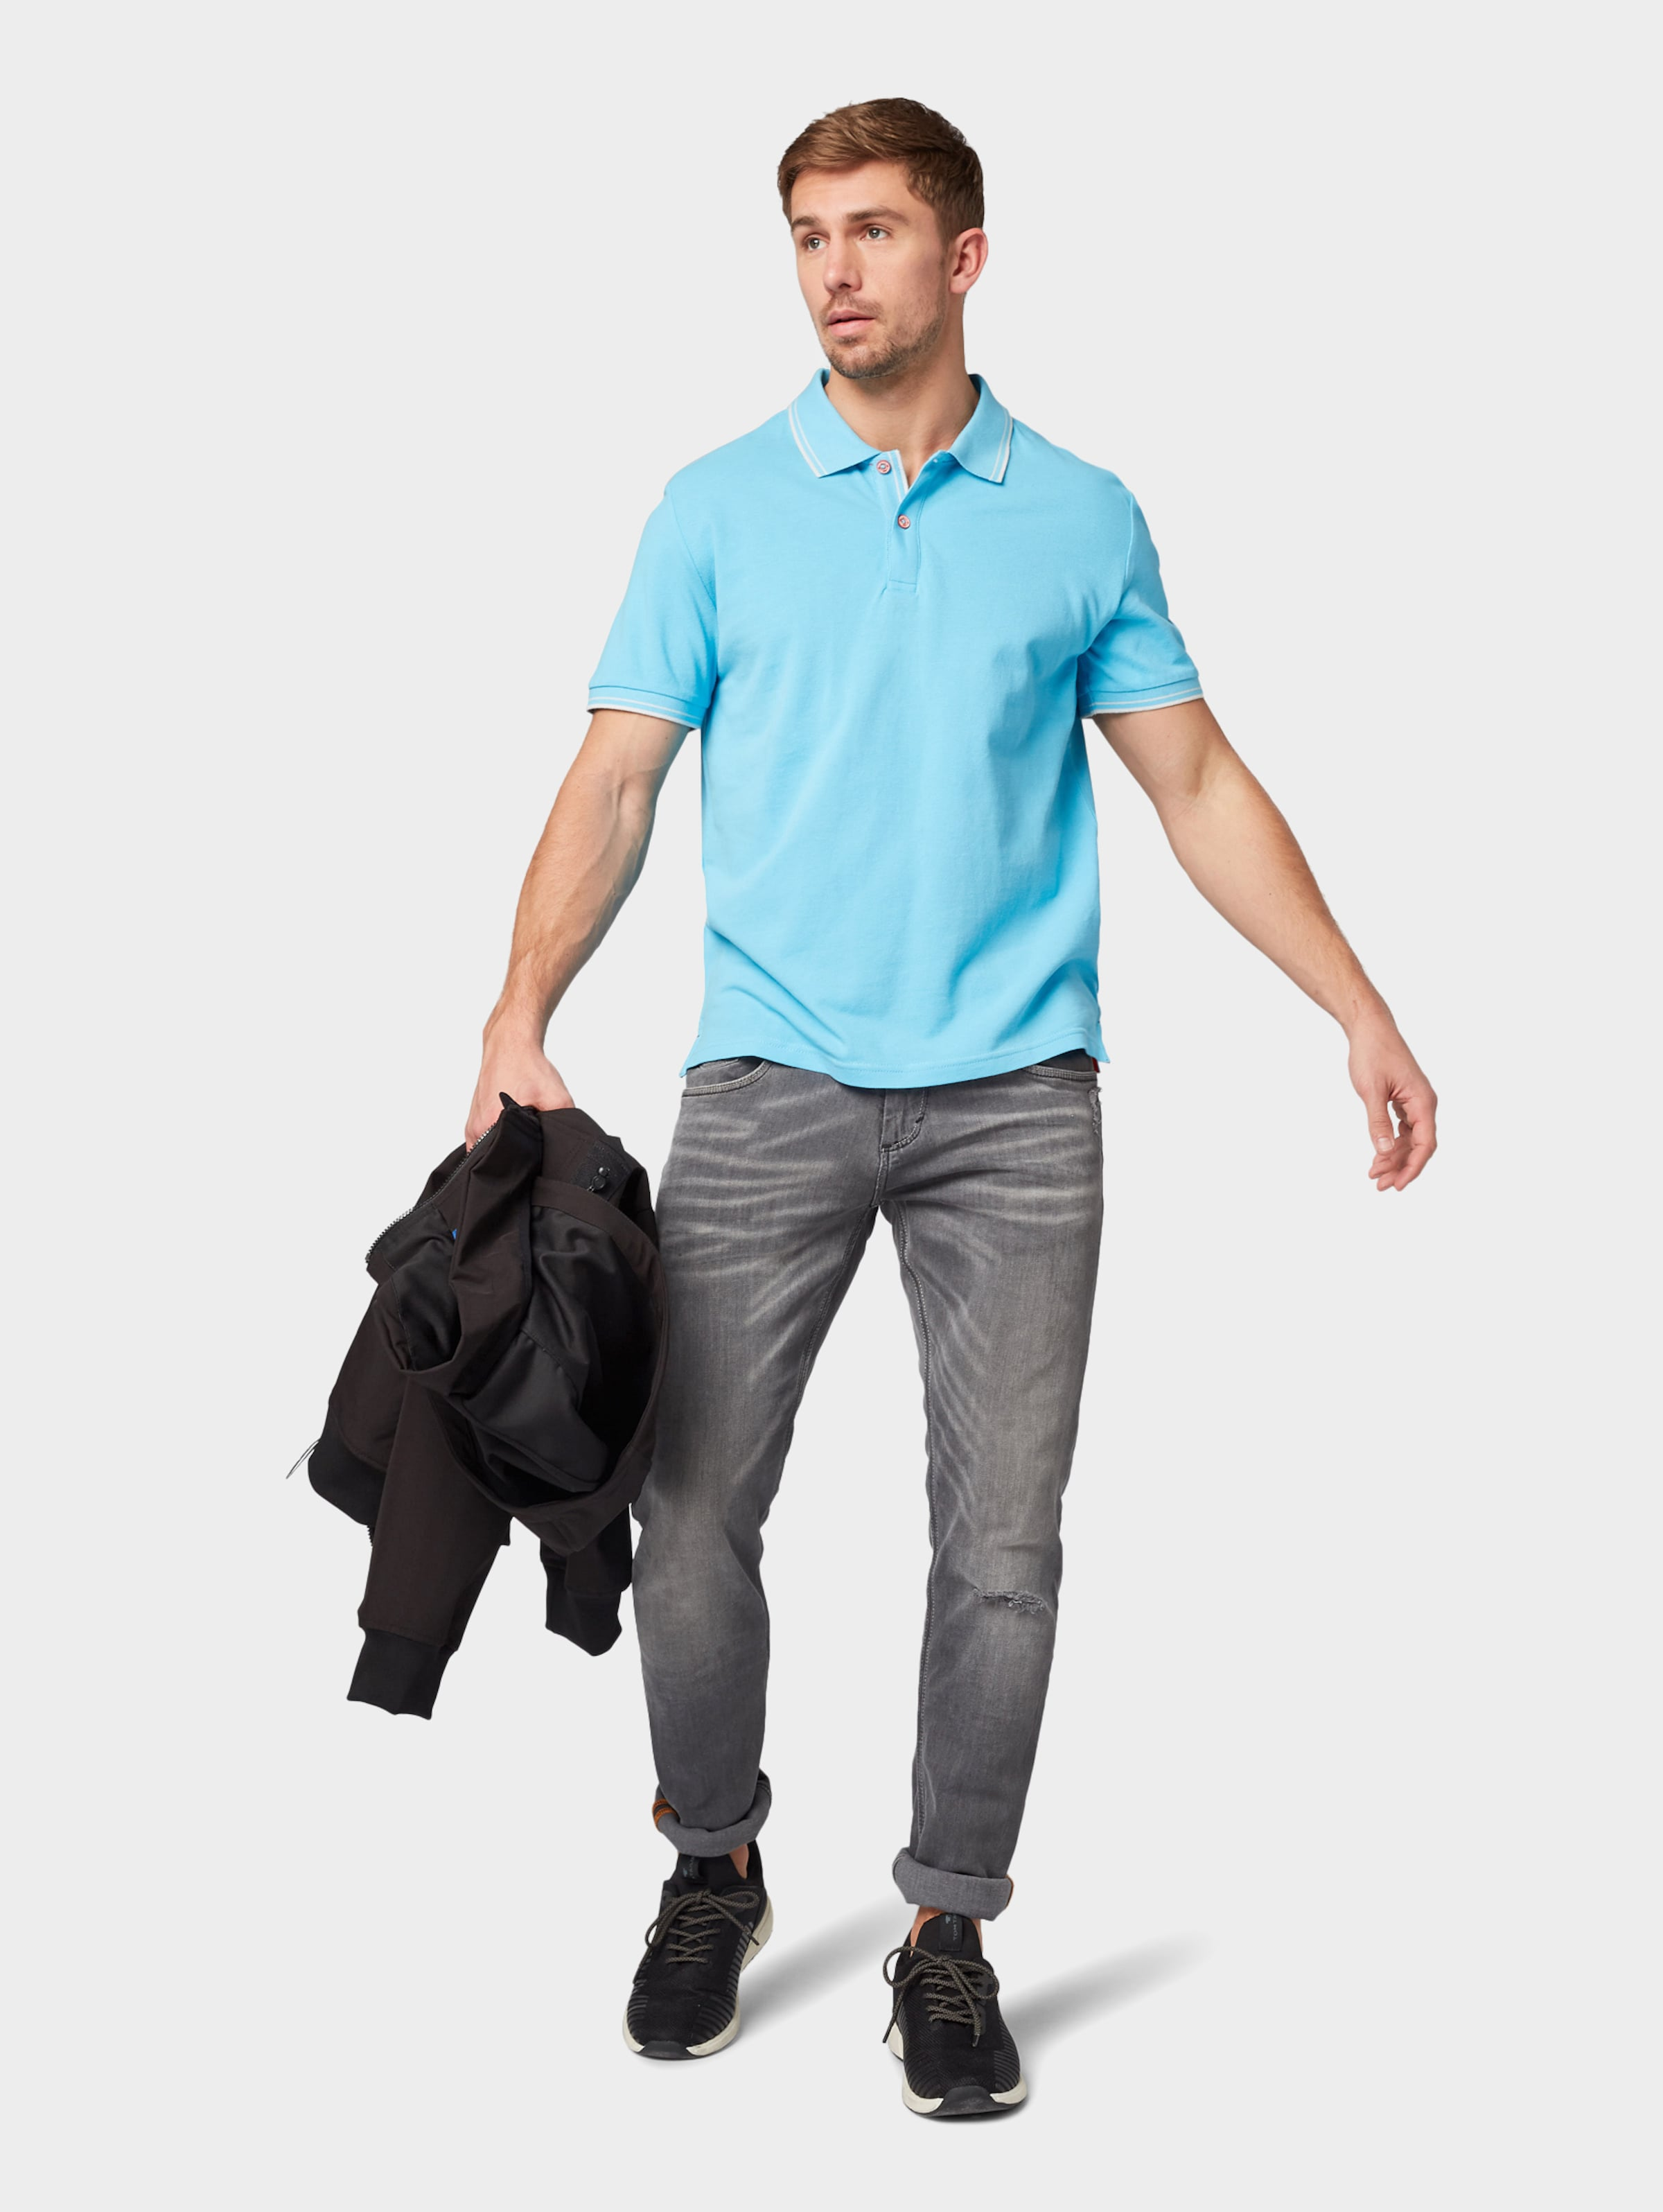 Tailor In In Tailor Poloshirt In Tom Poloshirt Tailor Türkis Tom Tom Türkis Poloshirt SVUpqzM